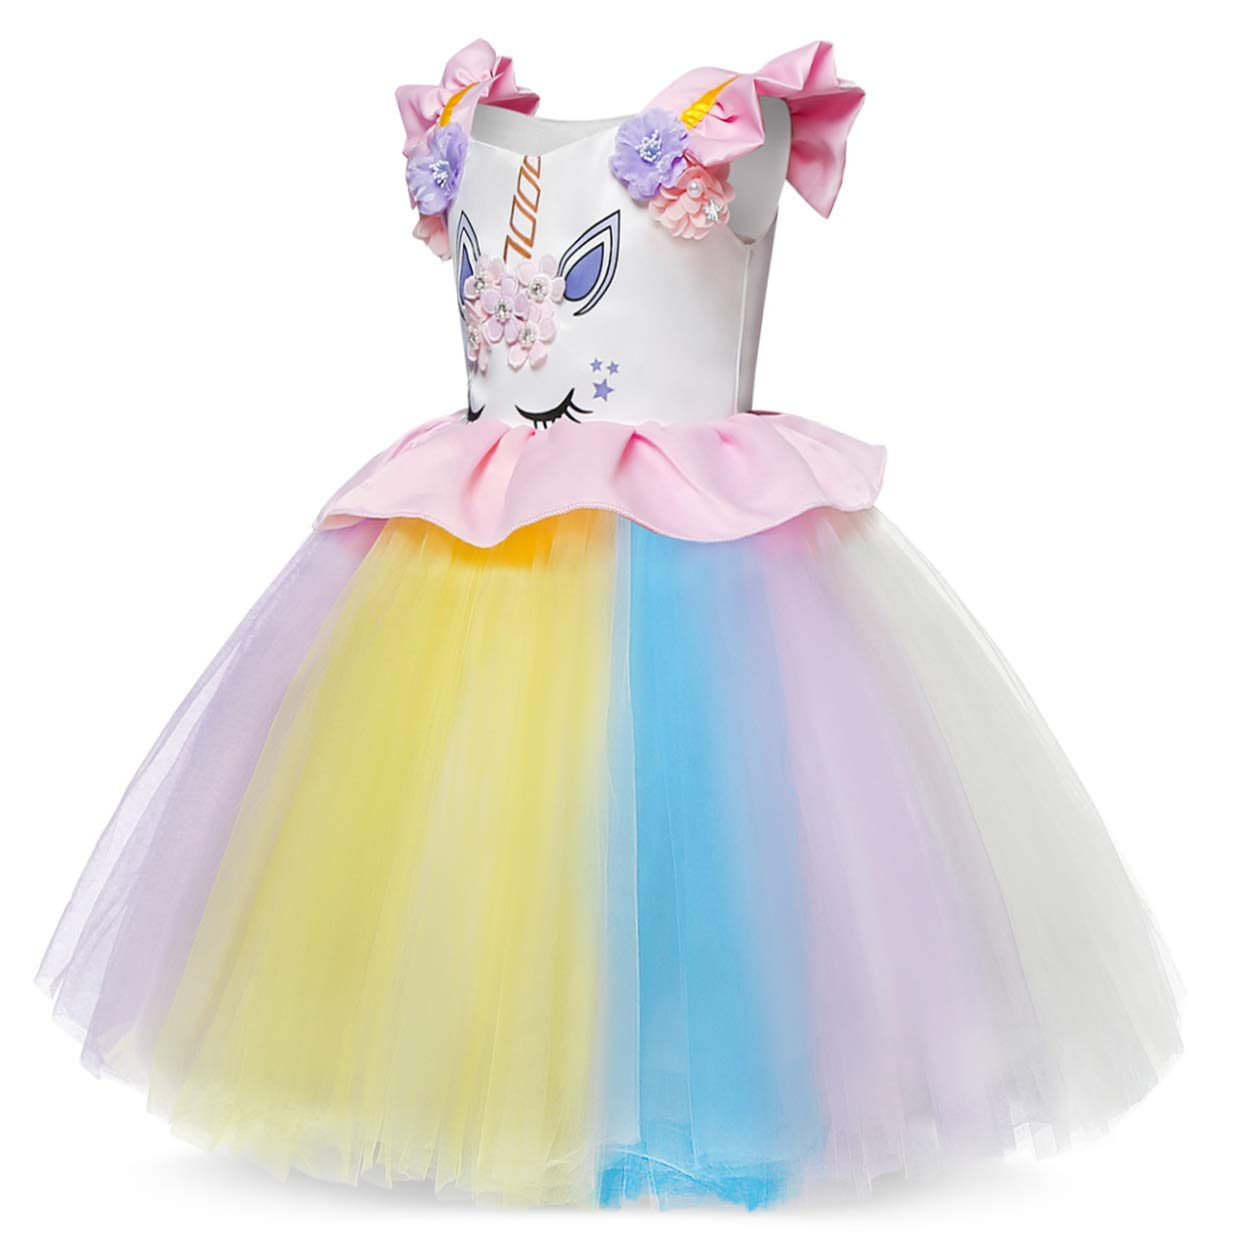 Cotrio Unicorn Costume Fancy Dress Up Flower Girls Dresses Pageant Party Evening Gowns Halloween Tutu Dress 3